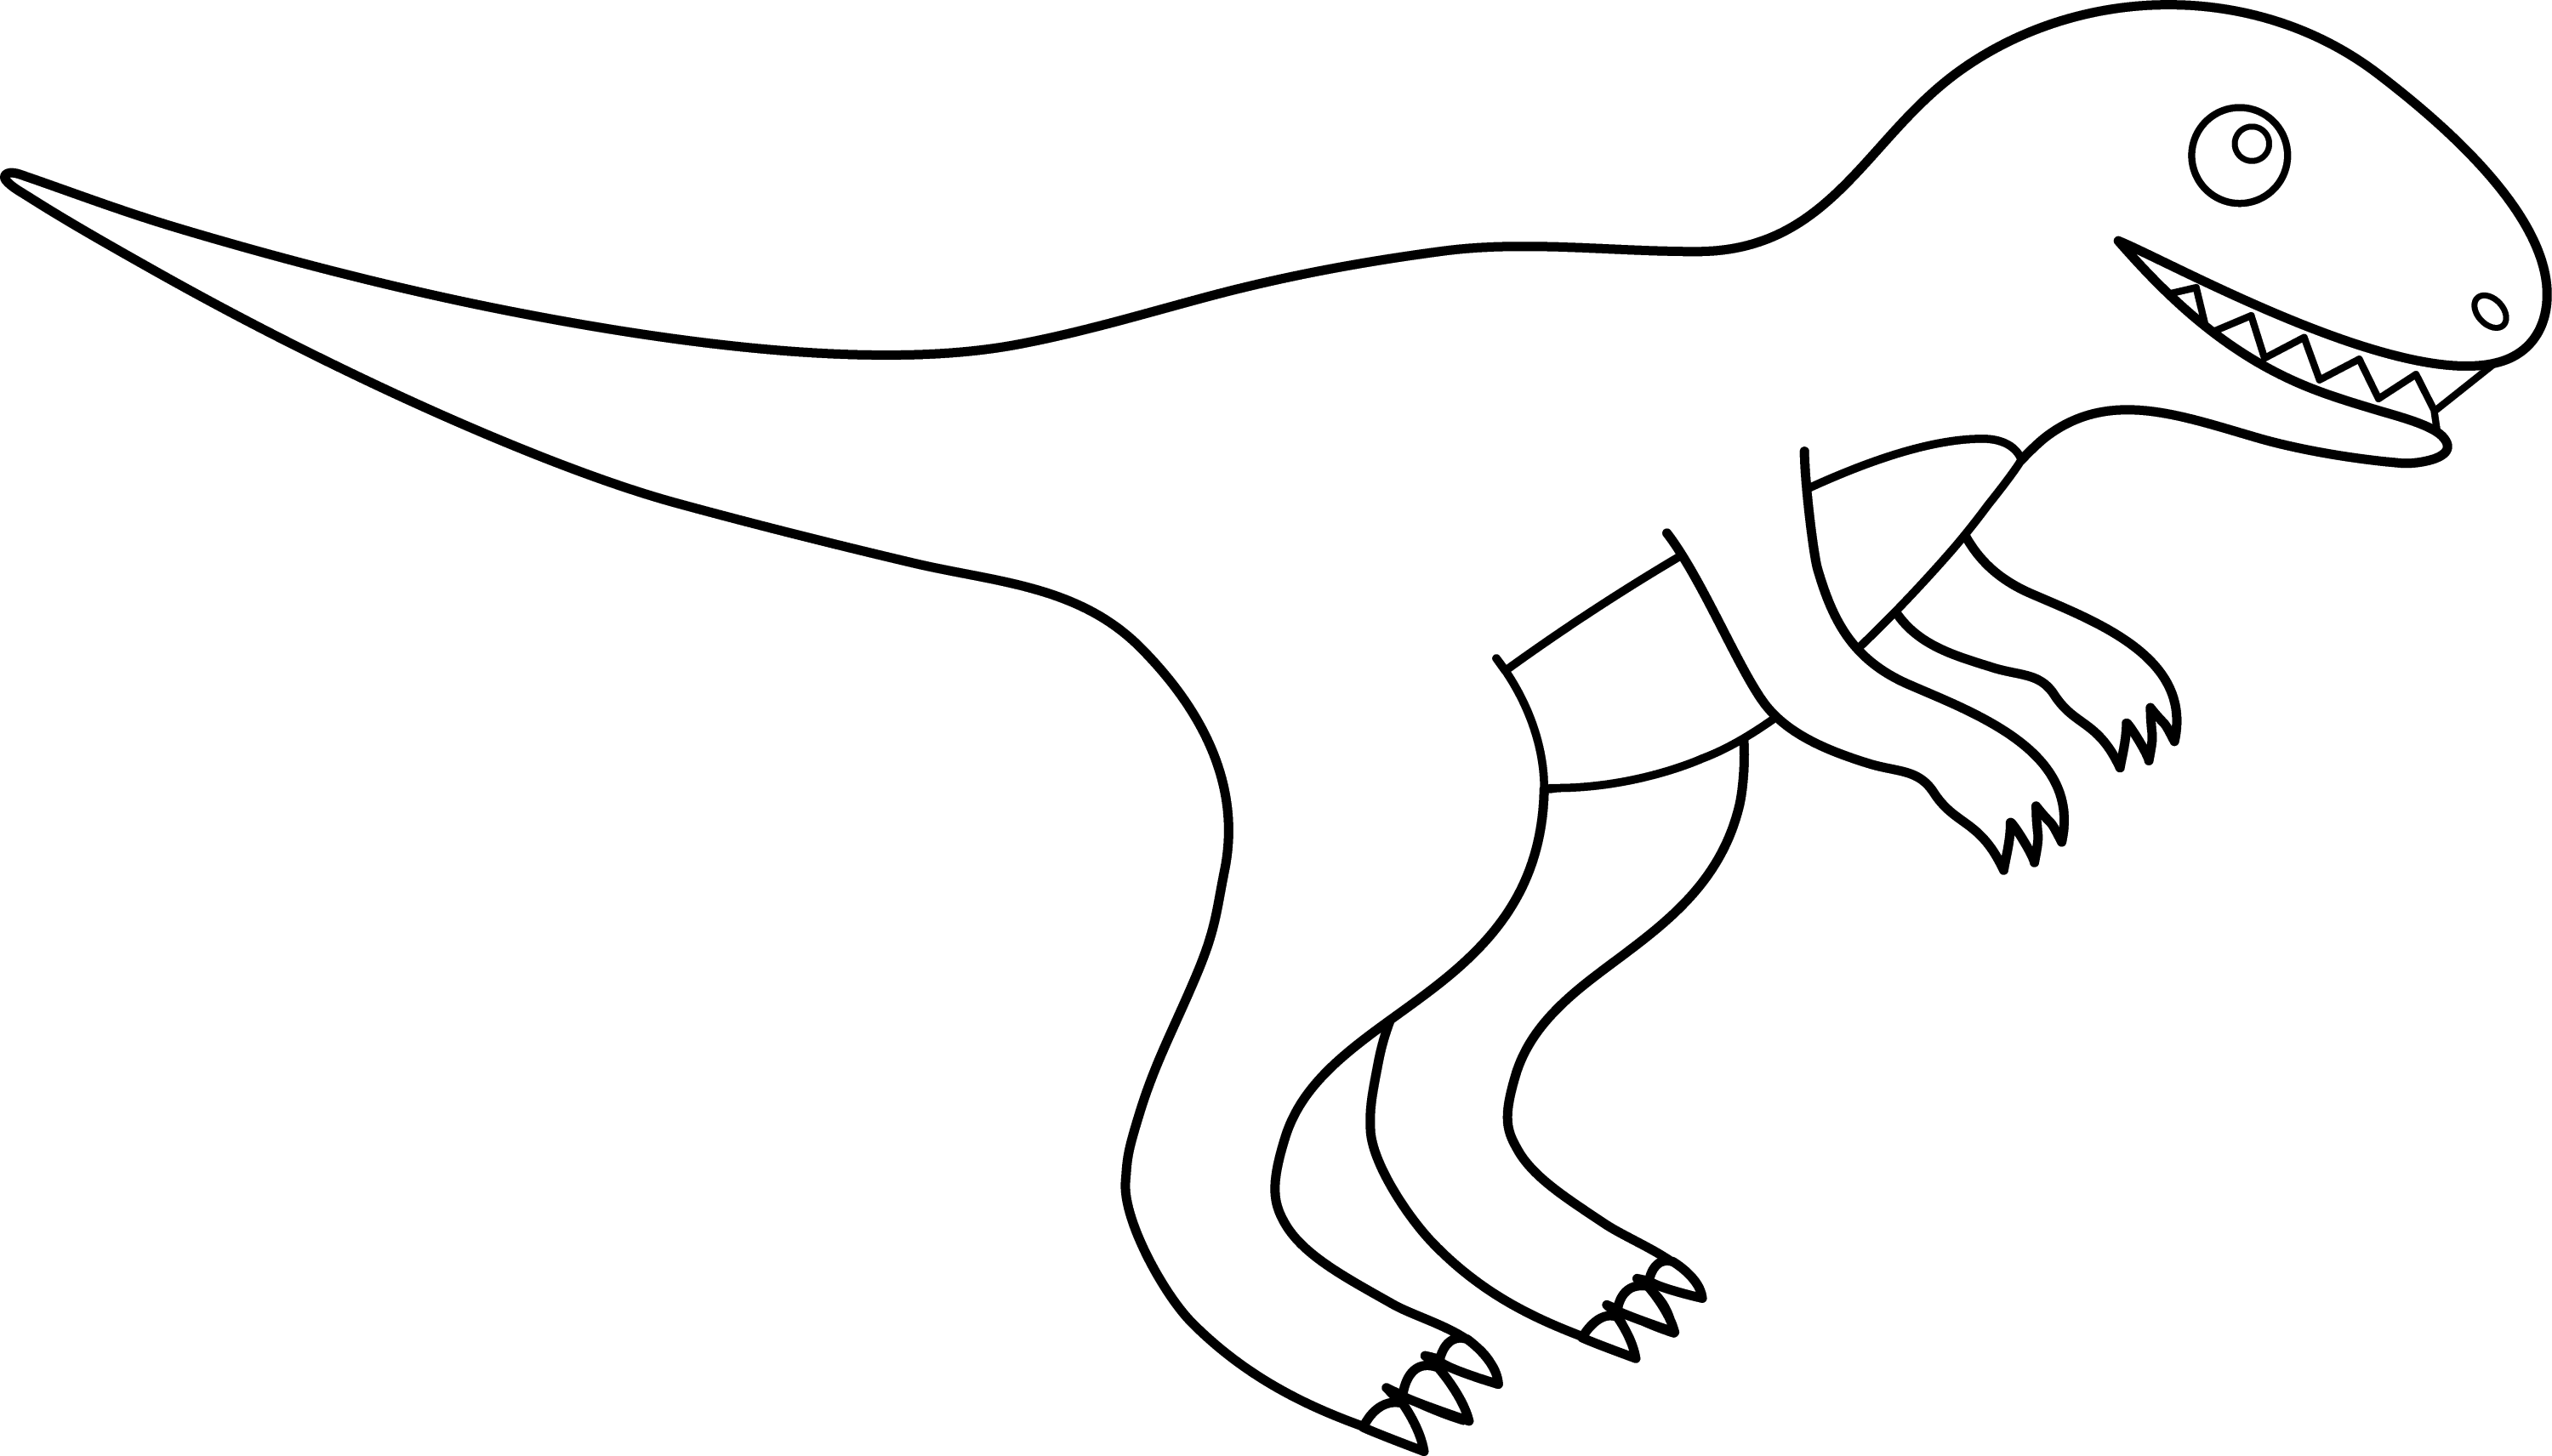 t rex outline drawing t rex outline free download on clipartmag t drawing outline rex